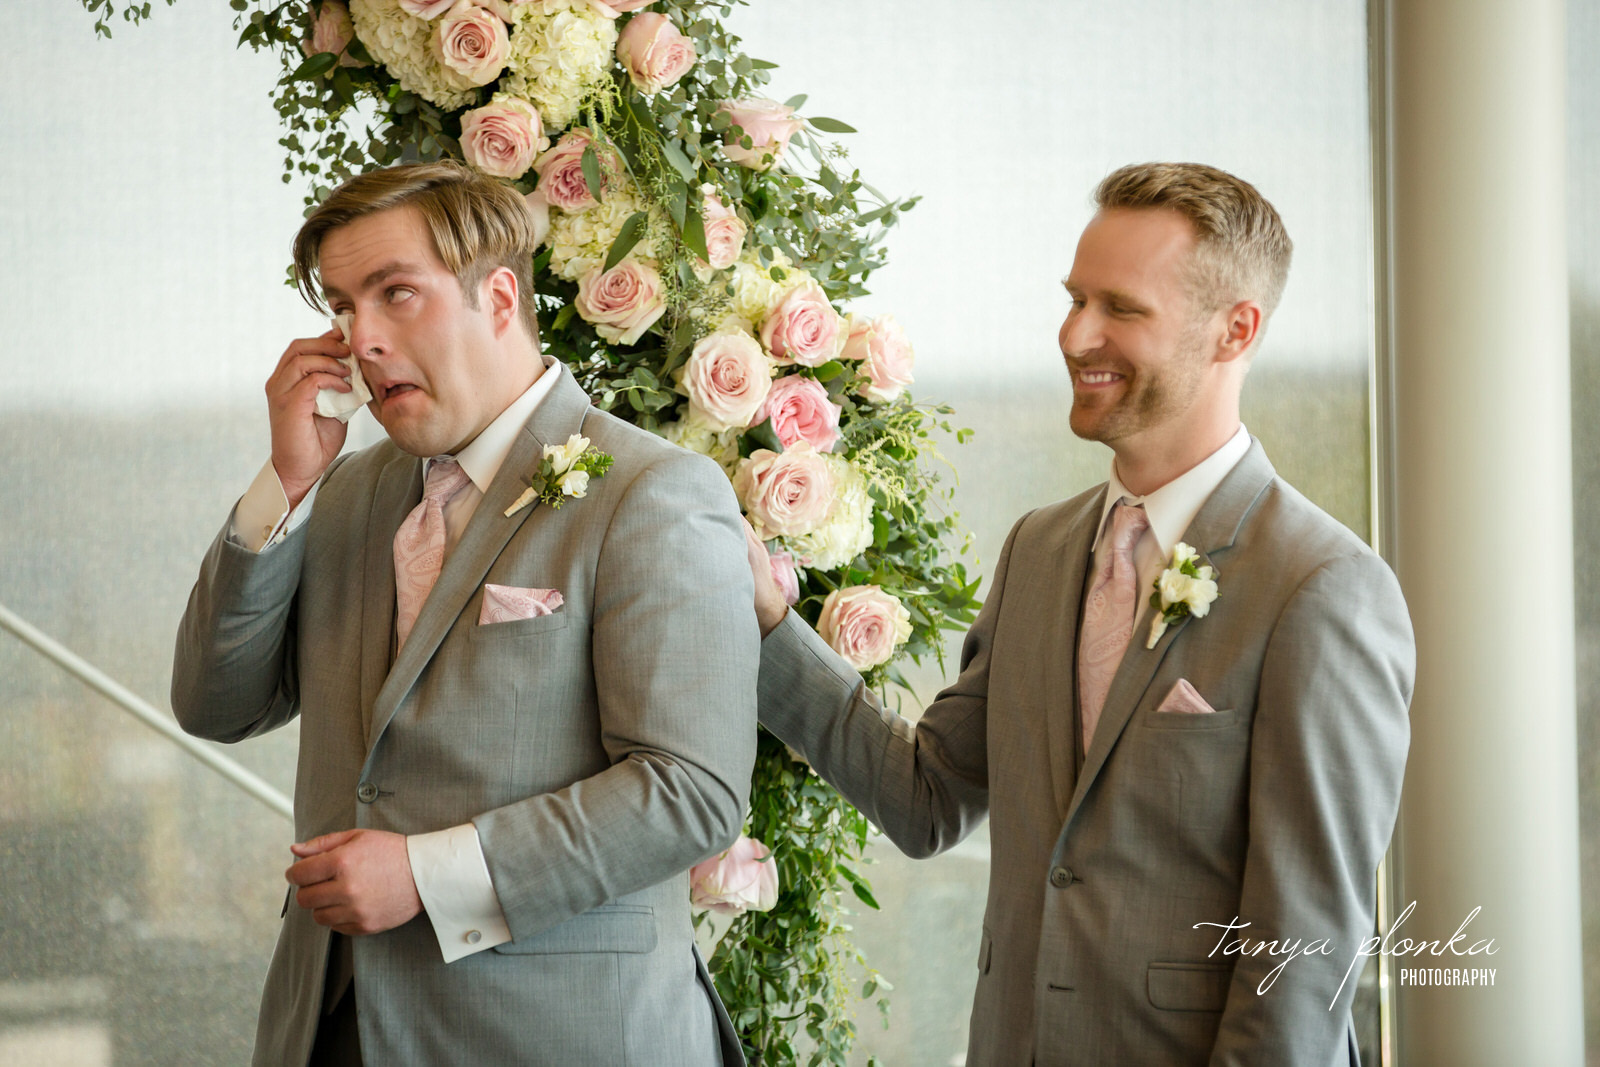 groomsman in gray suit wipes tear with tissue while other groomsman laughs and puts arm on shoulder